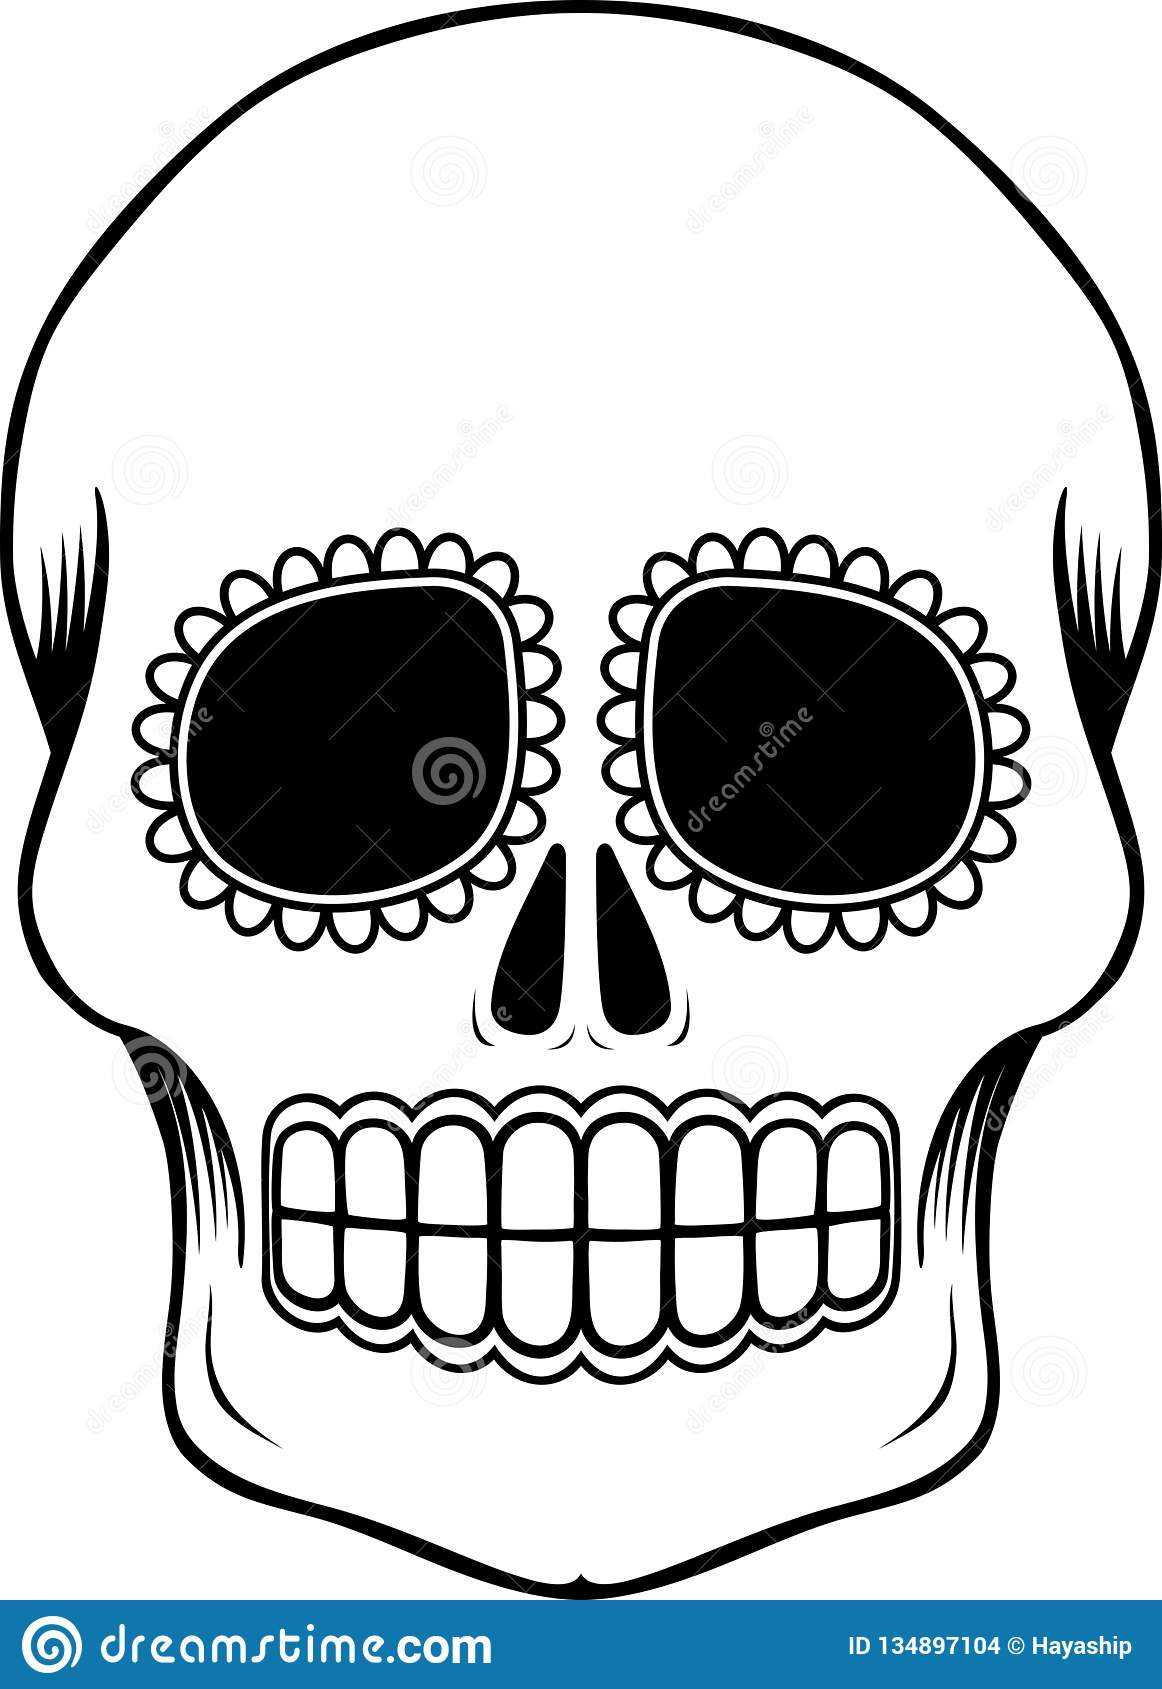 Mexican Sugar Skull Template Stock Vector - Illustration Of Within Blank Sugar Skull Template